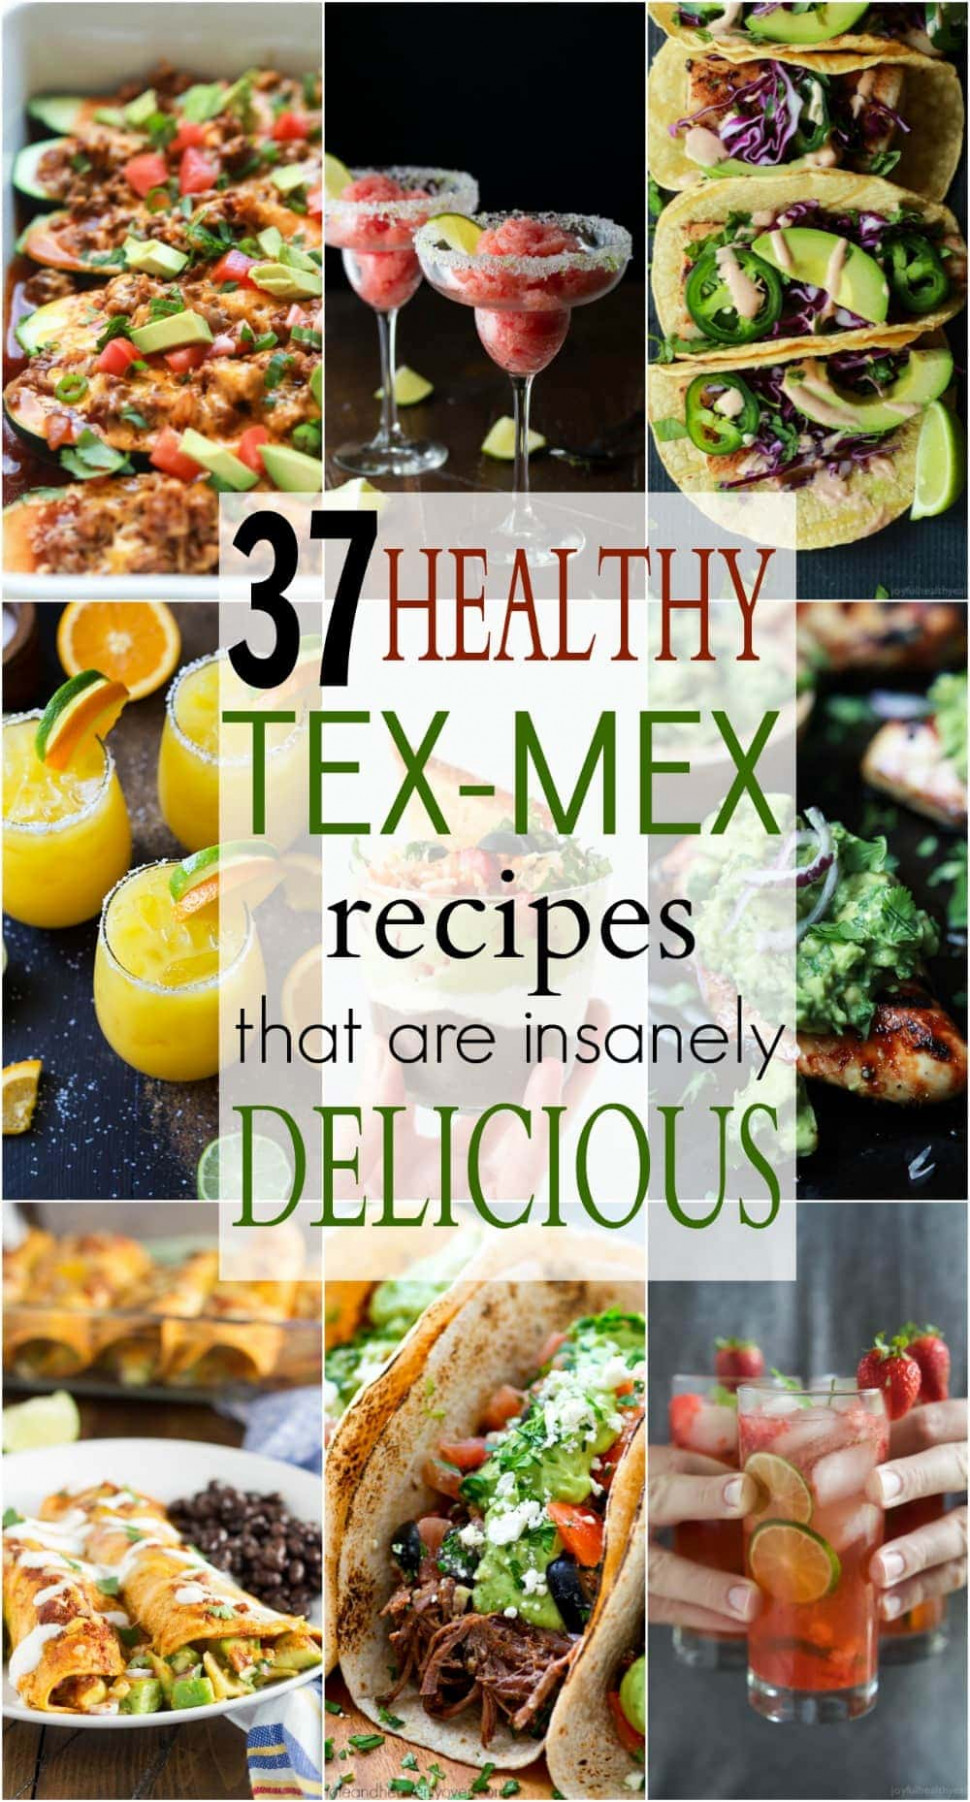 12 Healthy Tex-Mex Recipes that are Insanely Delicious ...